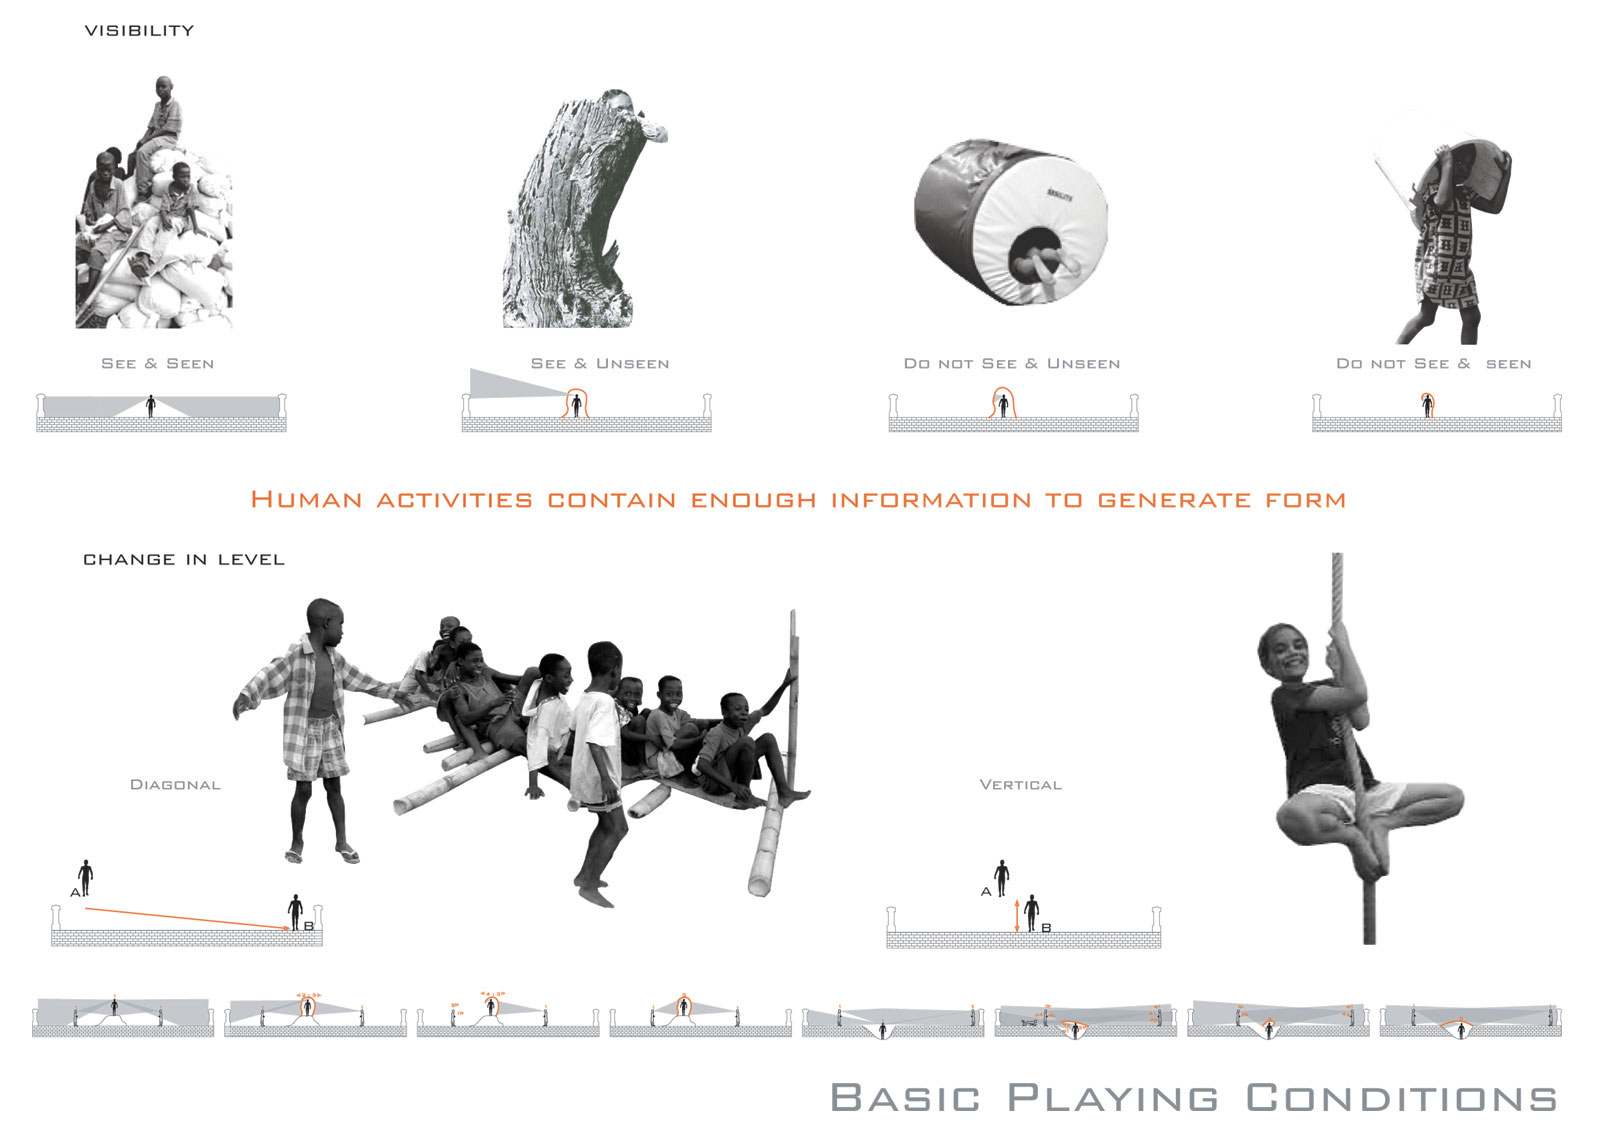 basic playing condotions: visibilty, change in level  human activities  contain enough information to generate form